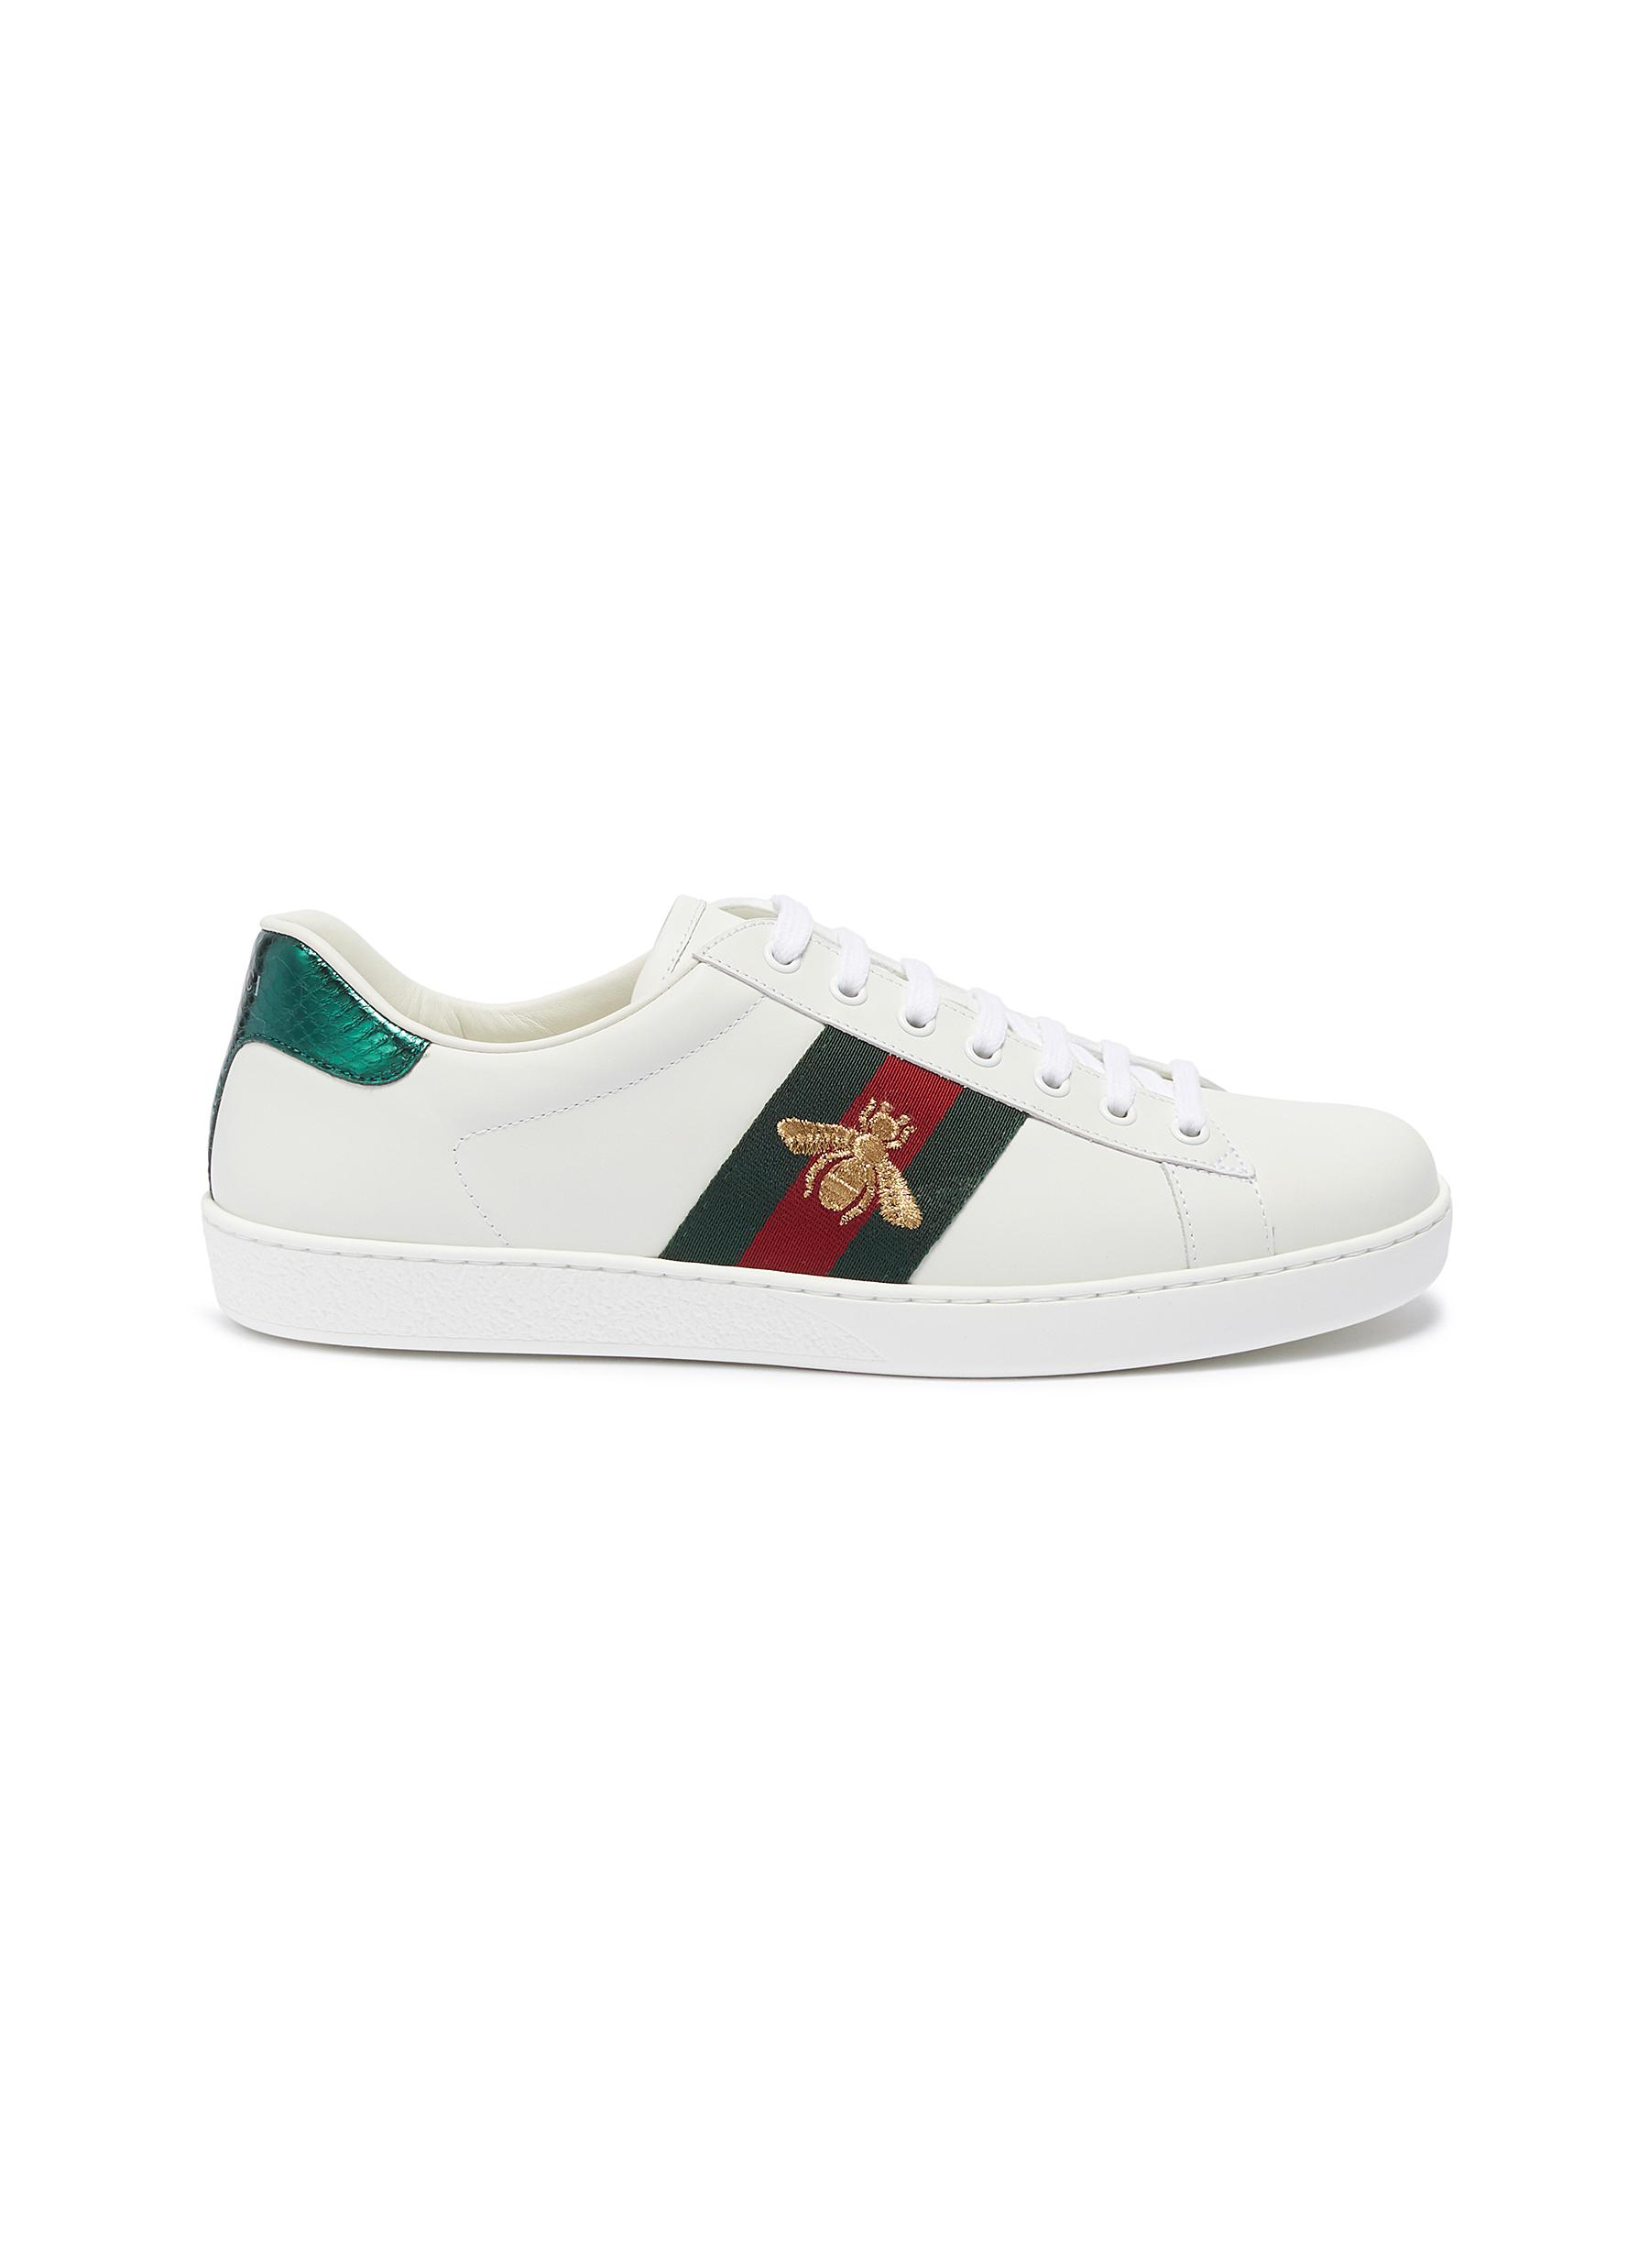 eb1c71518 GUCCI | 'Ace' bee embroidered Web stripe leather sneakers | Men ...